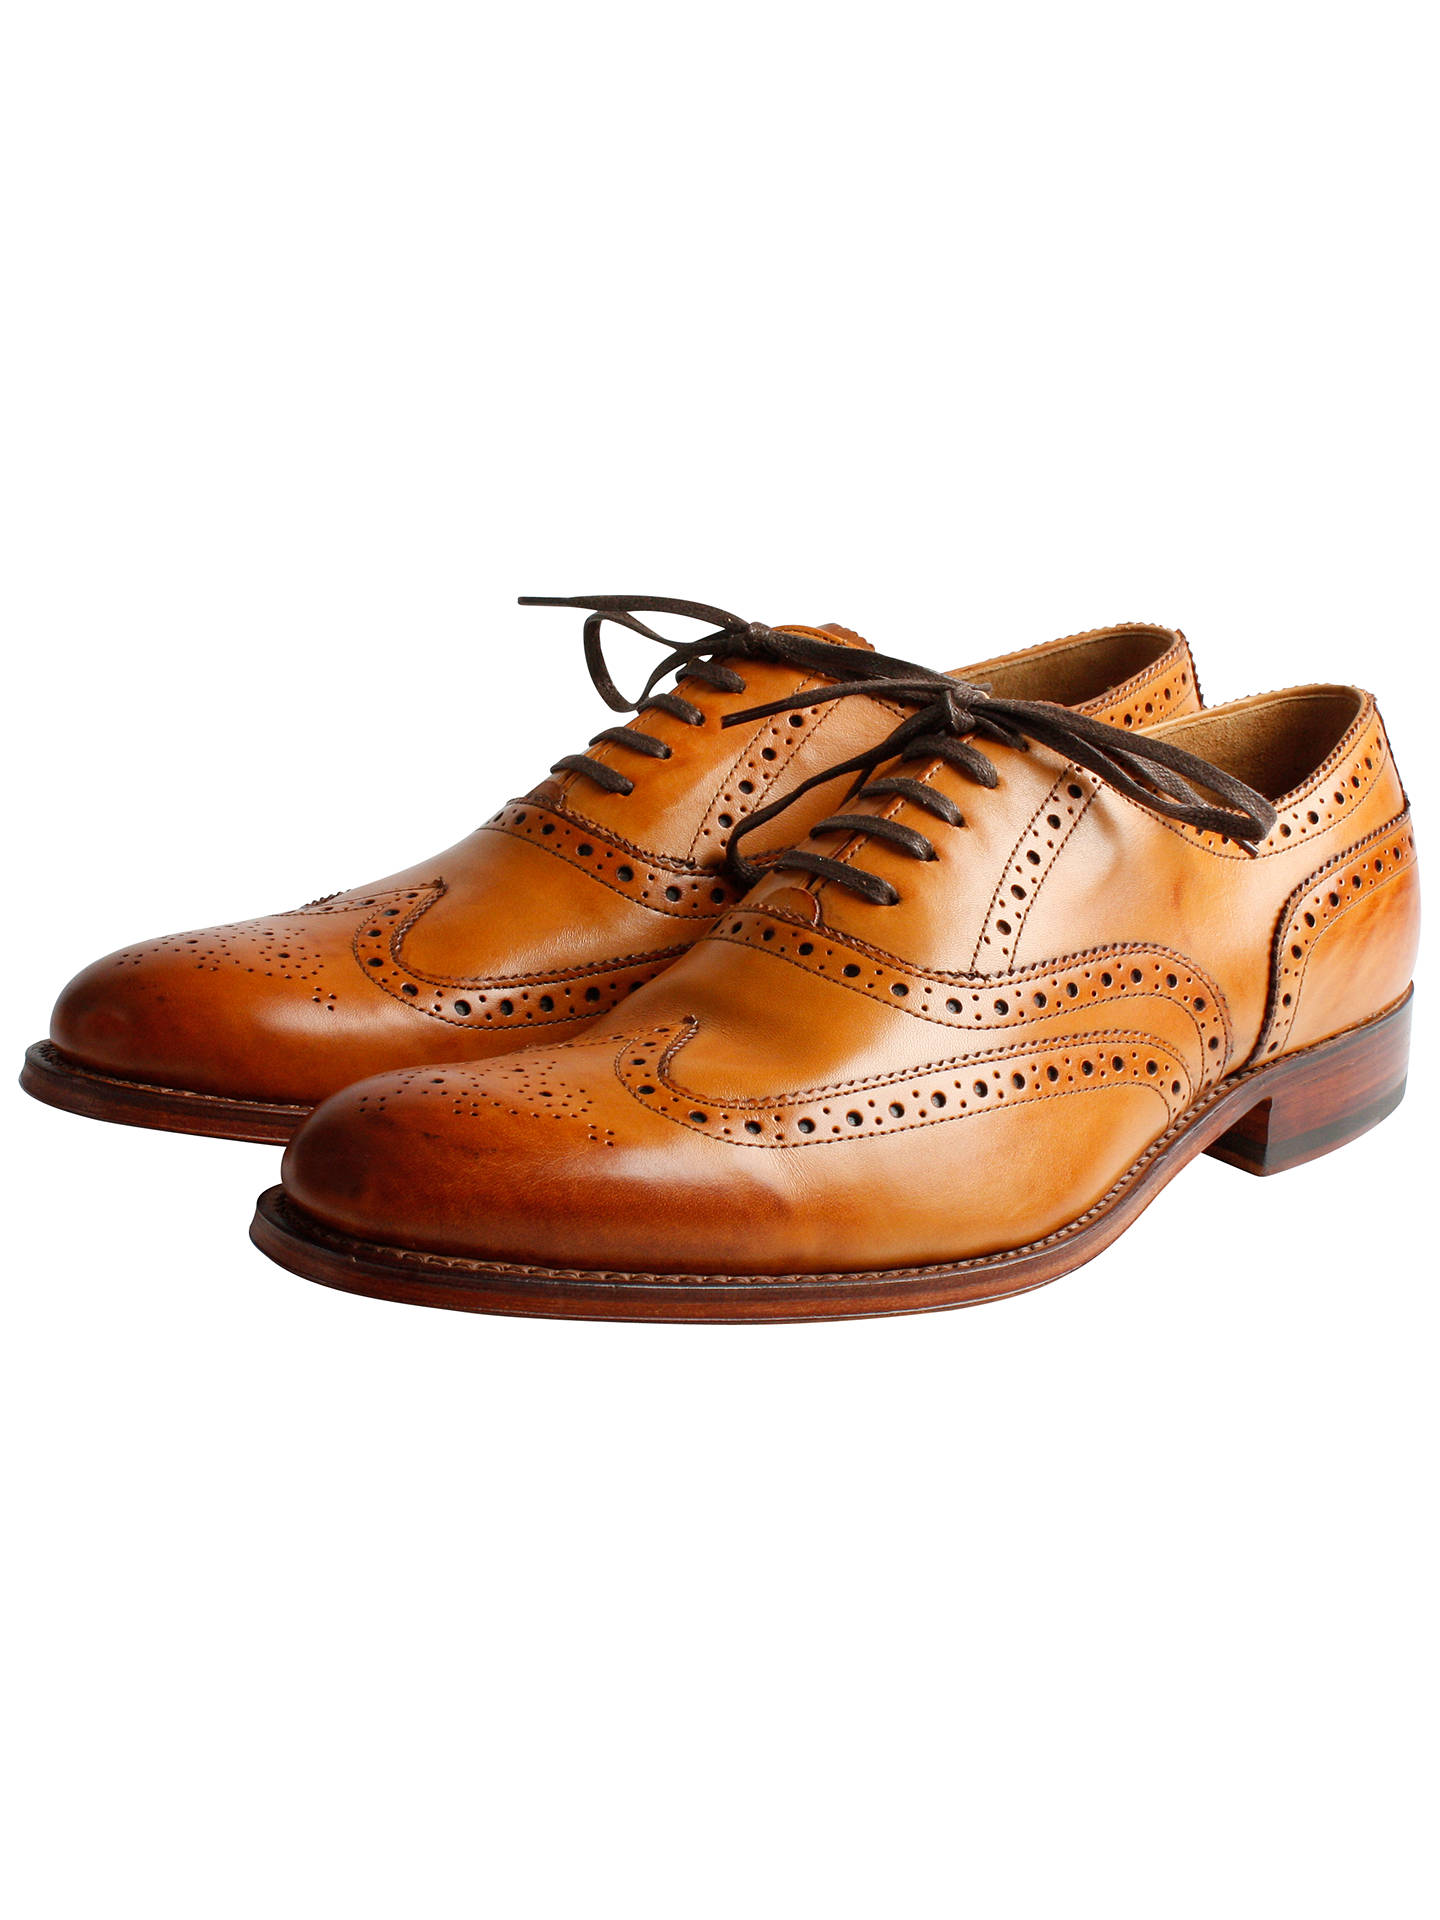 84fca39d0d5791 Grenson Dylan Leather Brogue Goodyear Welt Shoes at John Lewis ...